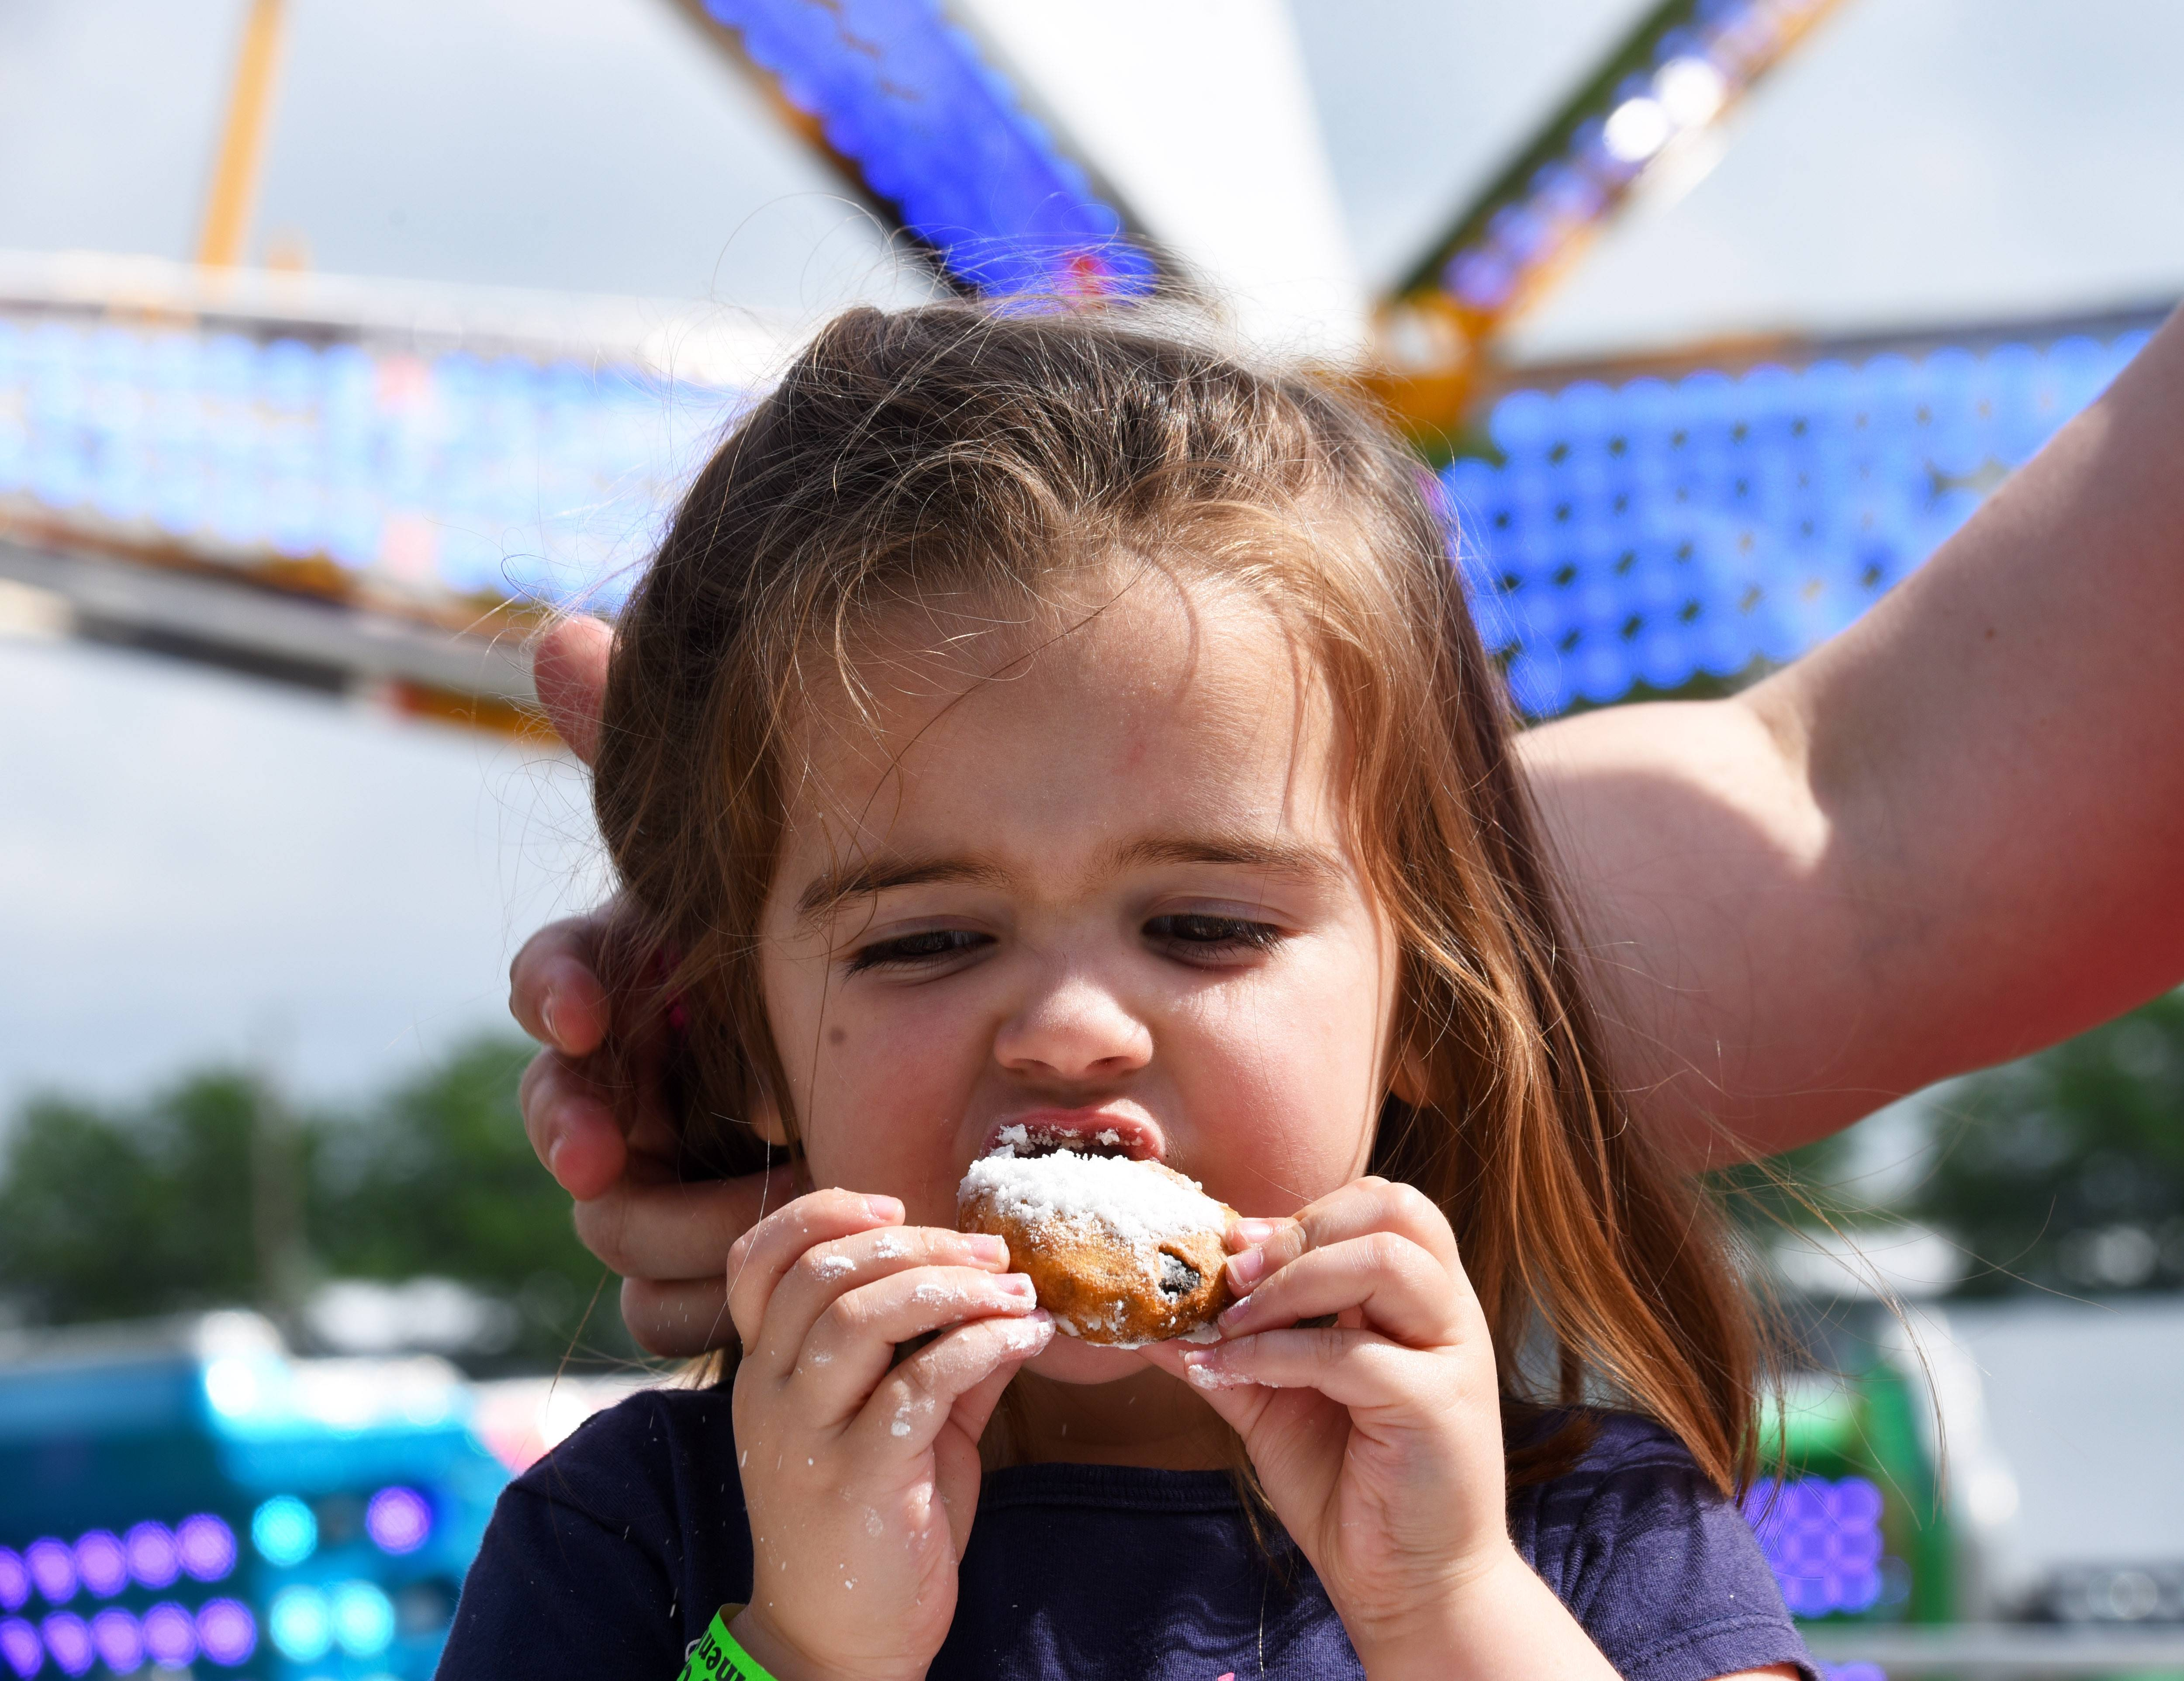 Hayden Michaelis, 3, of St. Charles, tries her first plate of fried oreos while her mother, Katrina Michaelis, keeps her hair out of the way on Saturday at Gilberts Community Days festival in Gilberts. Hayden's father, Eric Michaelis, said it was the family's first time at the carnival and Hayden's favorite part was riding the carousel.